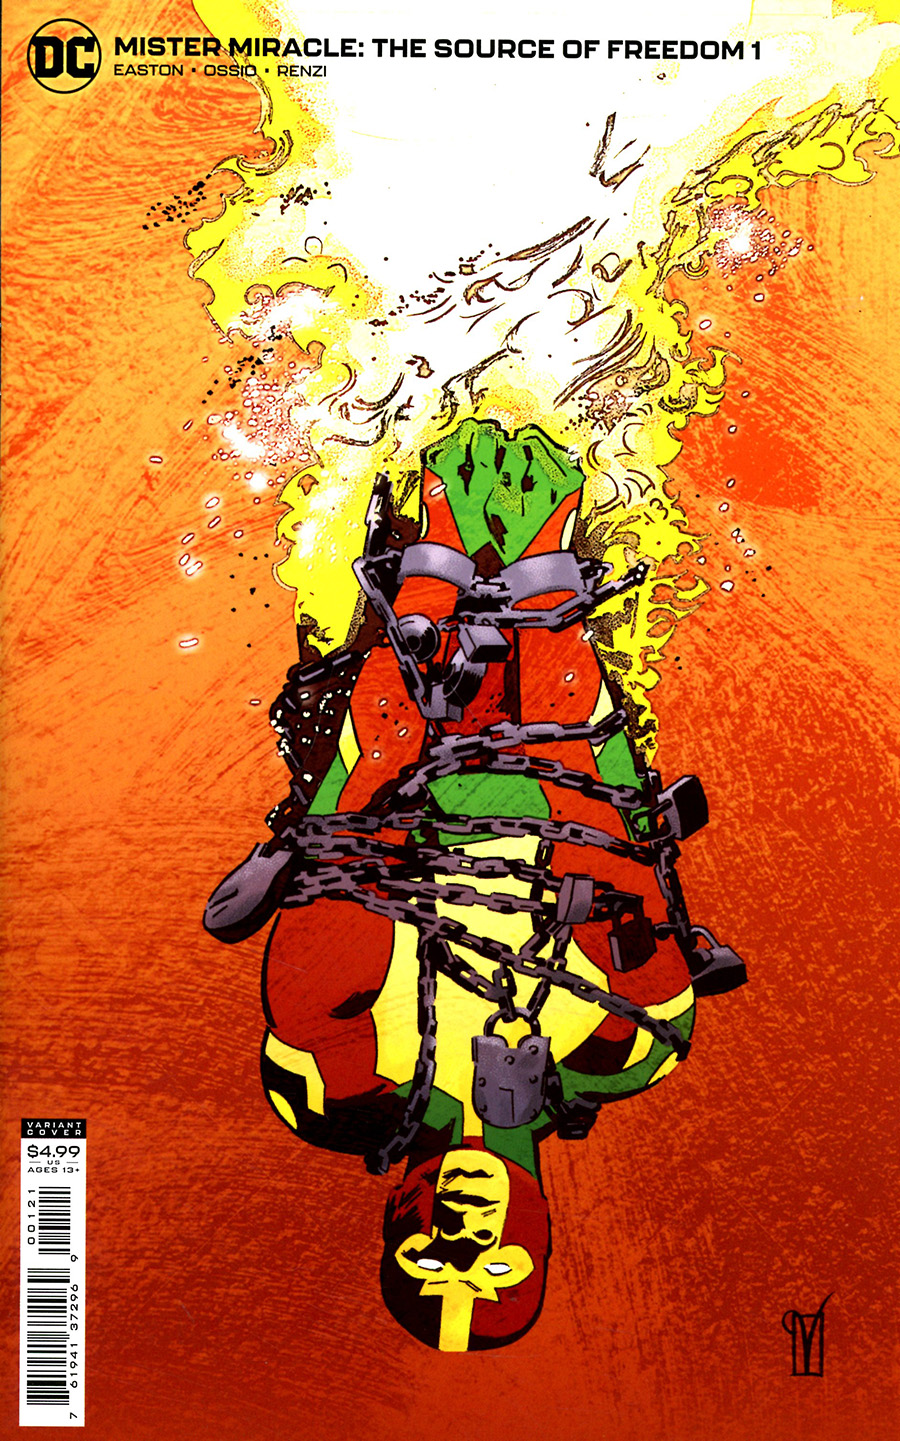 Mister Miracle The Source Of Freedom #1 Cover B Variant Valentine De Landro Card Stock Cover